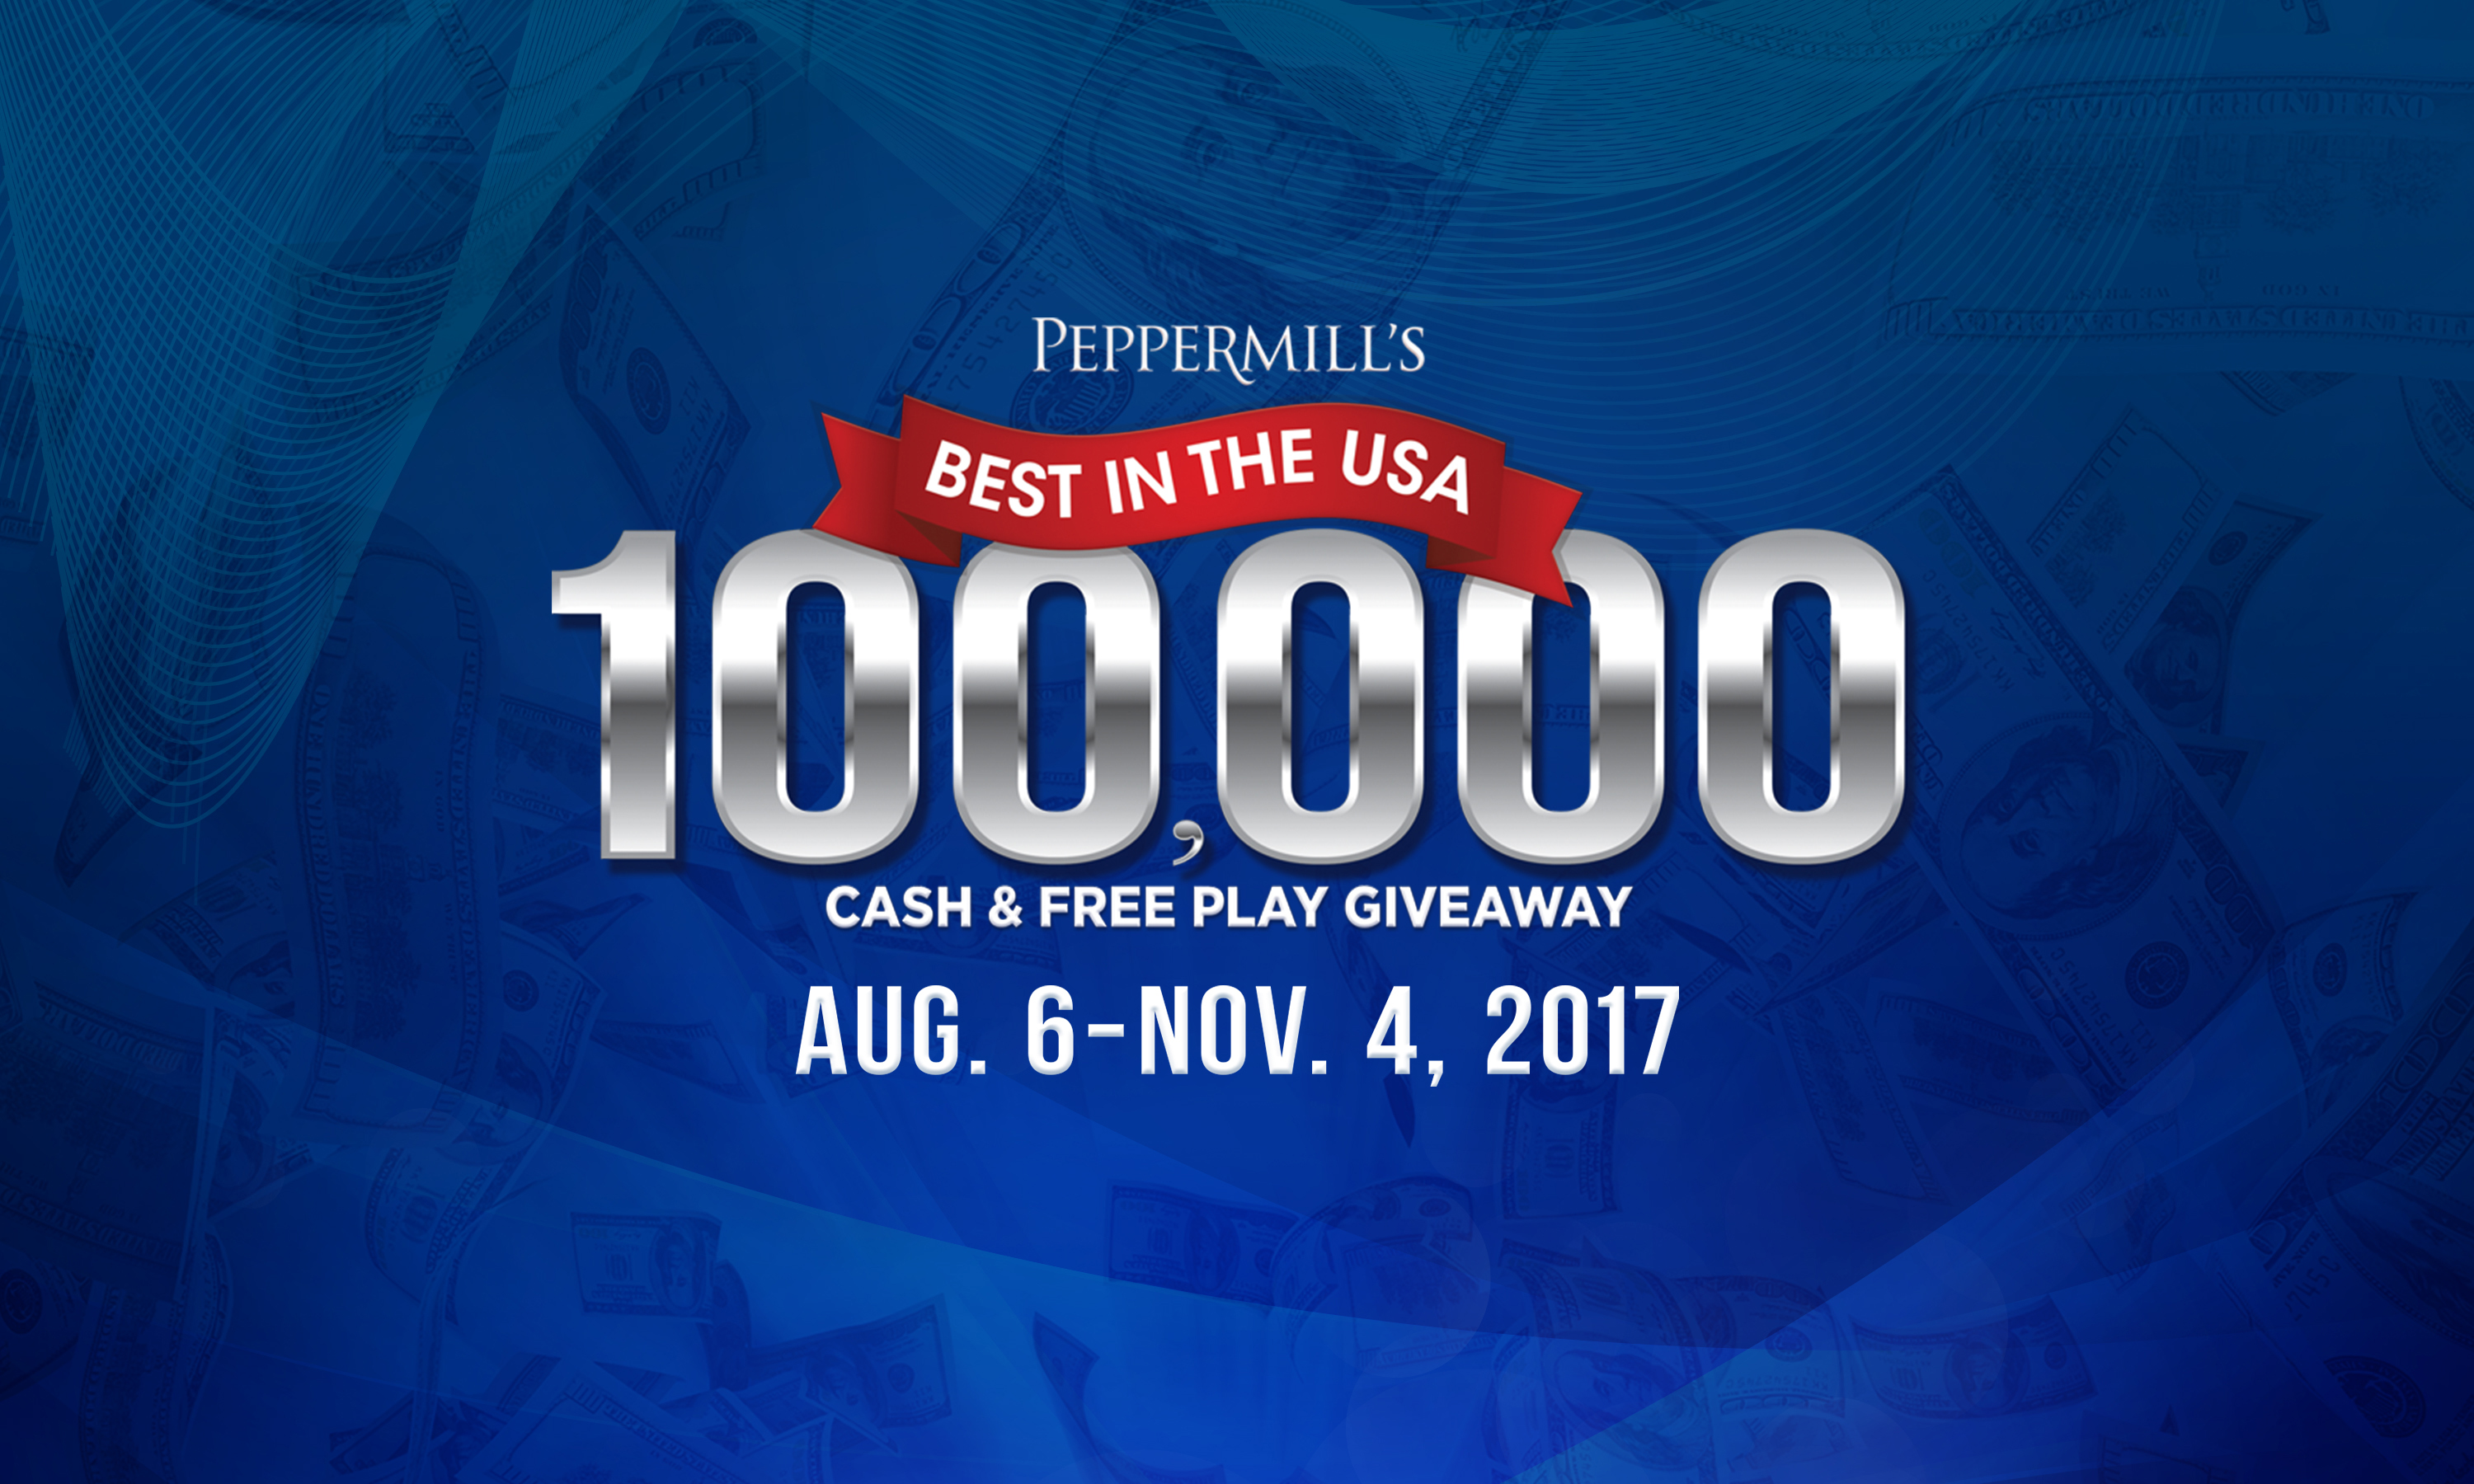 peppermill casino reno offers